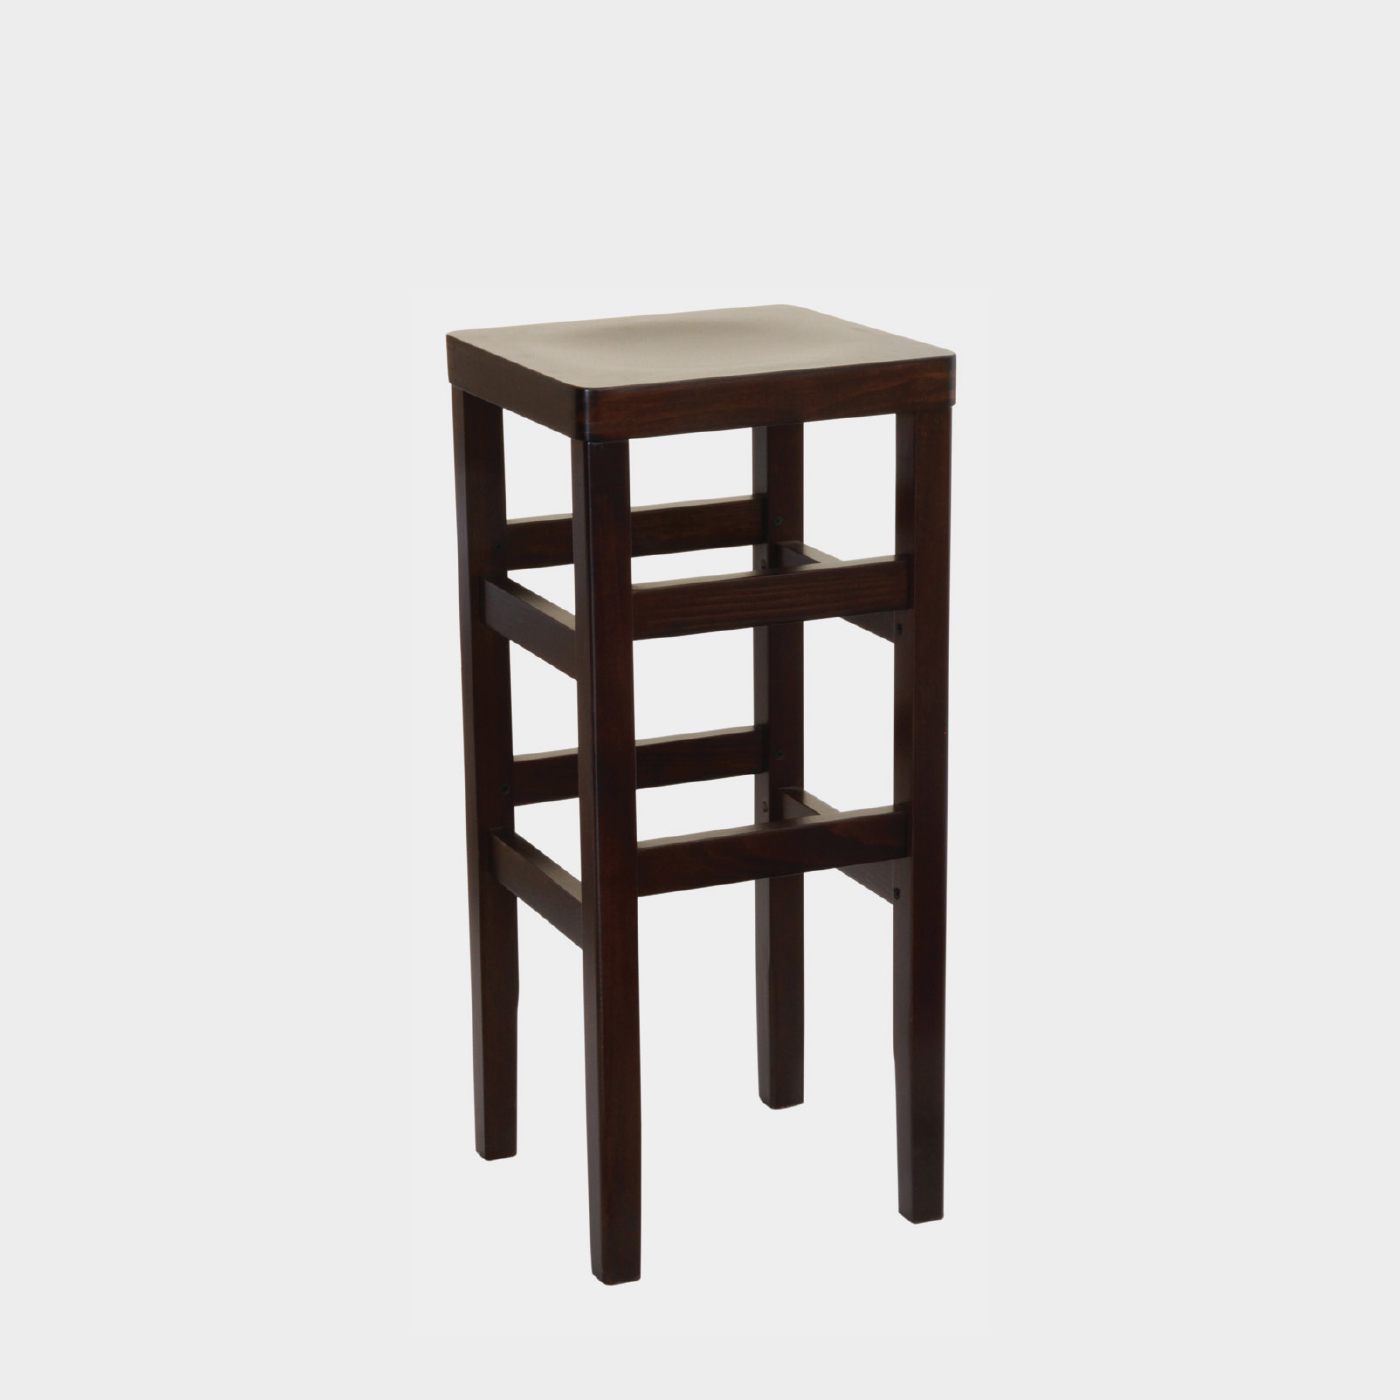 Astonishing Square Barstool Thonet Caraccident5 Cool Chair Designs And Ideas Caraccident5Info